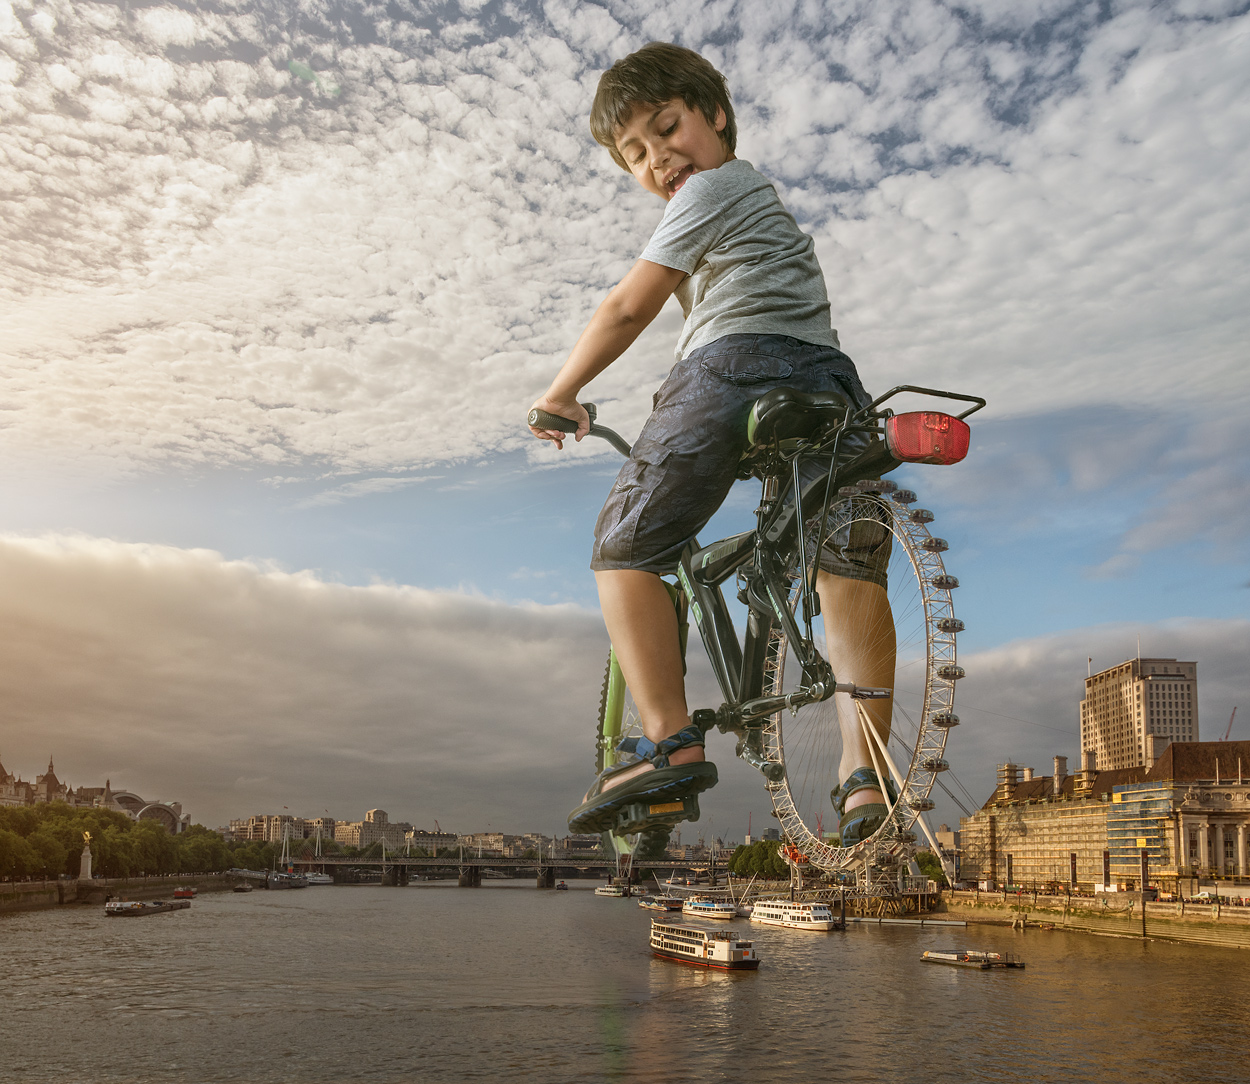 02-London-Eye-Adrian-Sommeling-Surreal-Photo-Manipulation-with-a-Son-s-Help-www-designstack-co